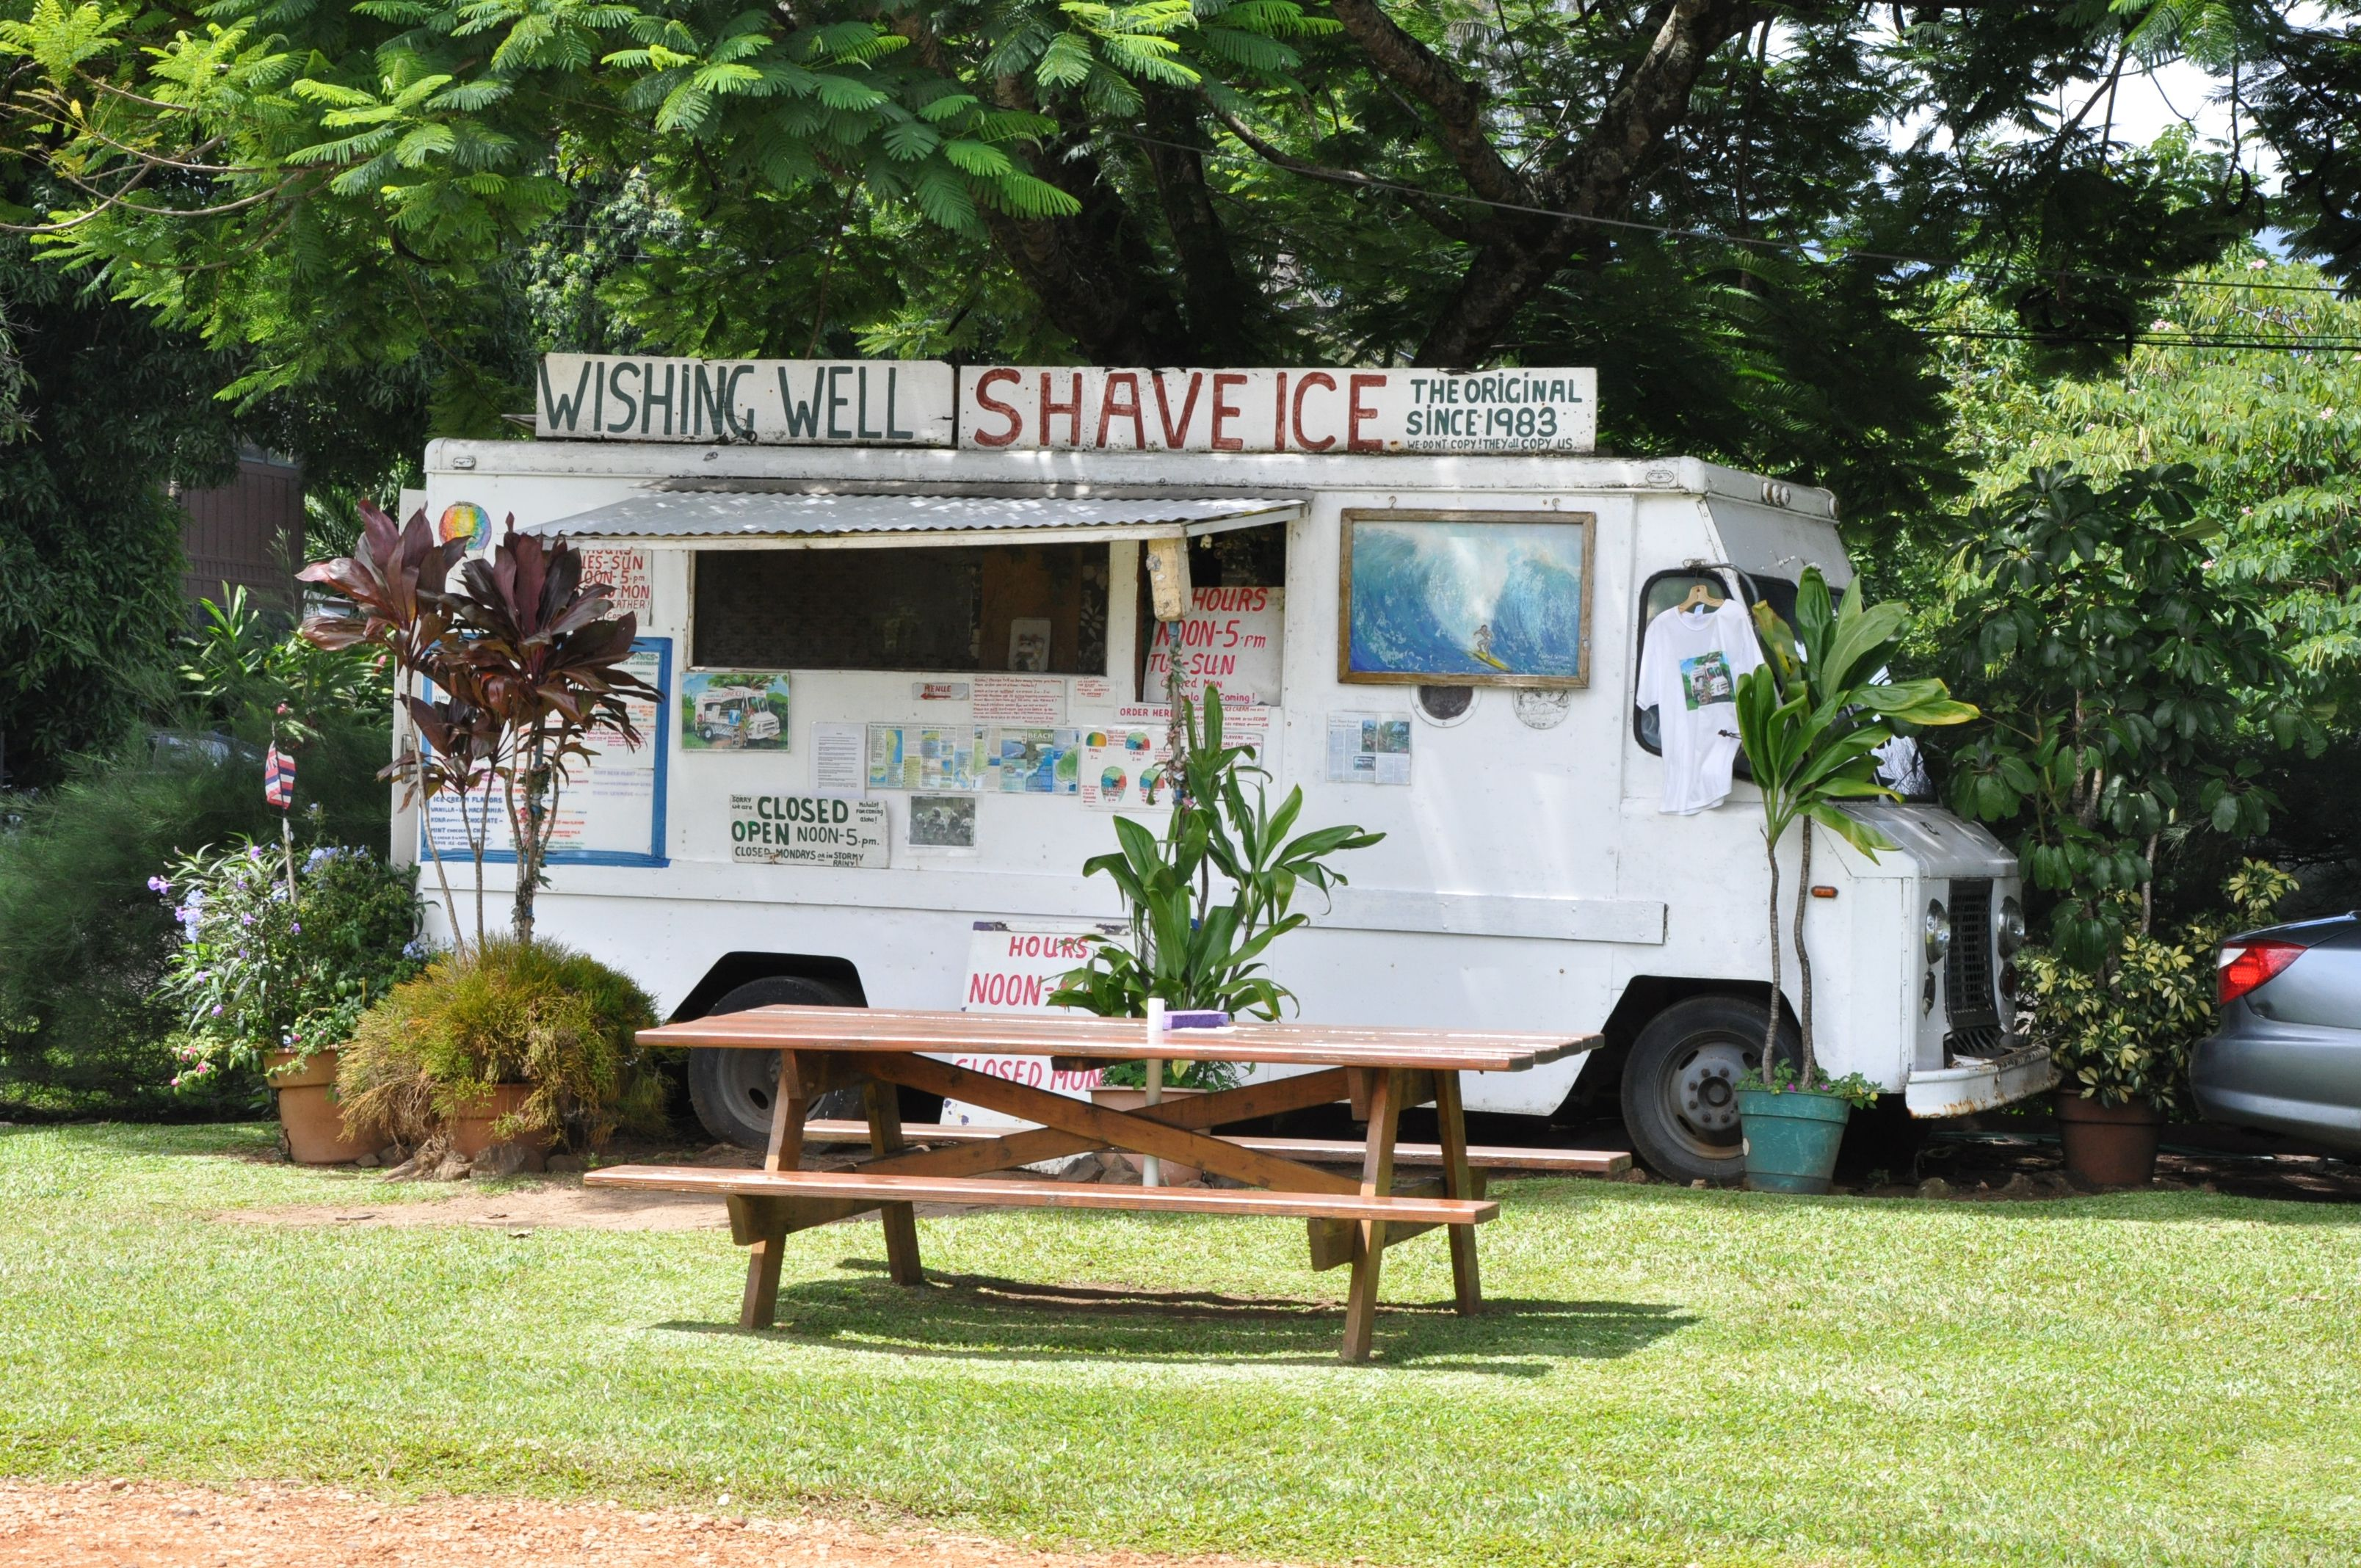 Wishing Well Shave Ice